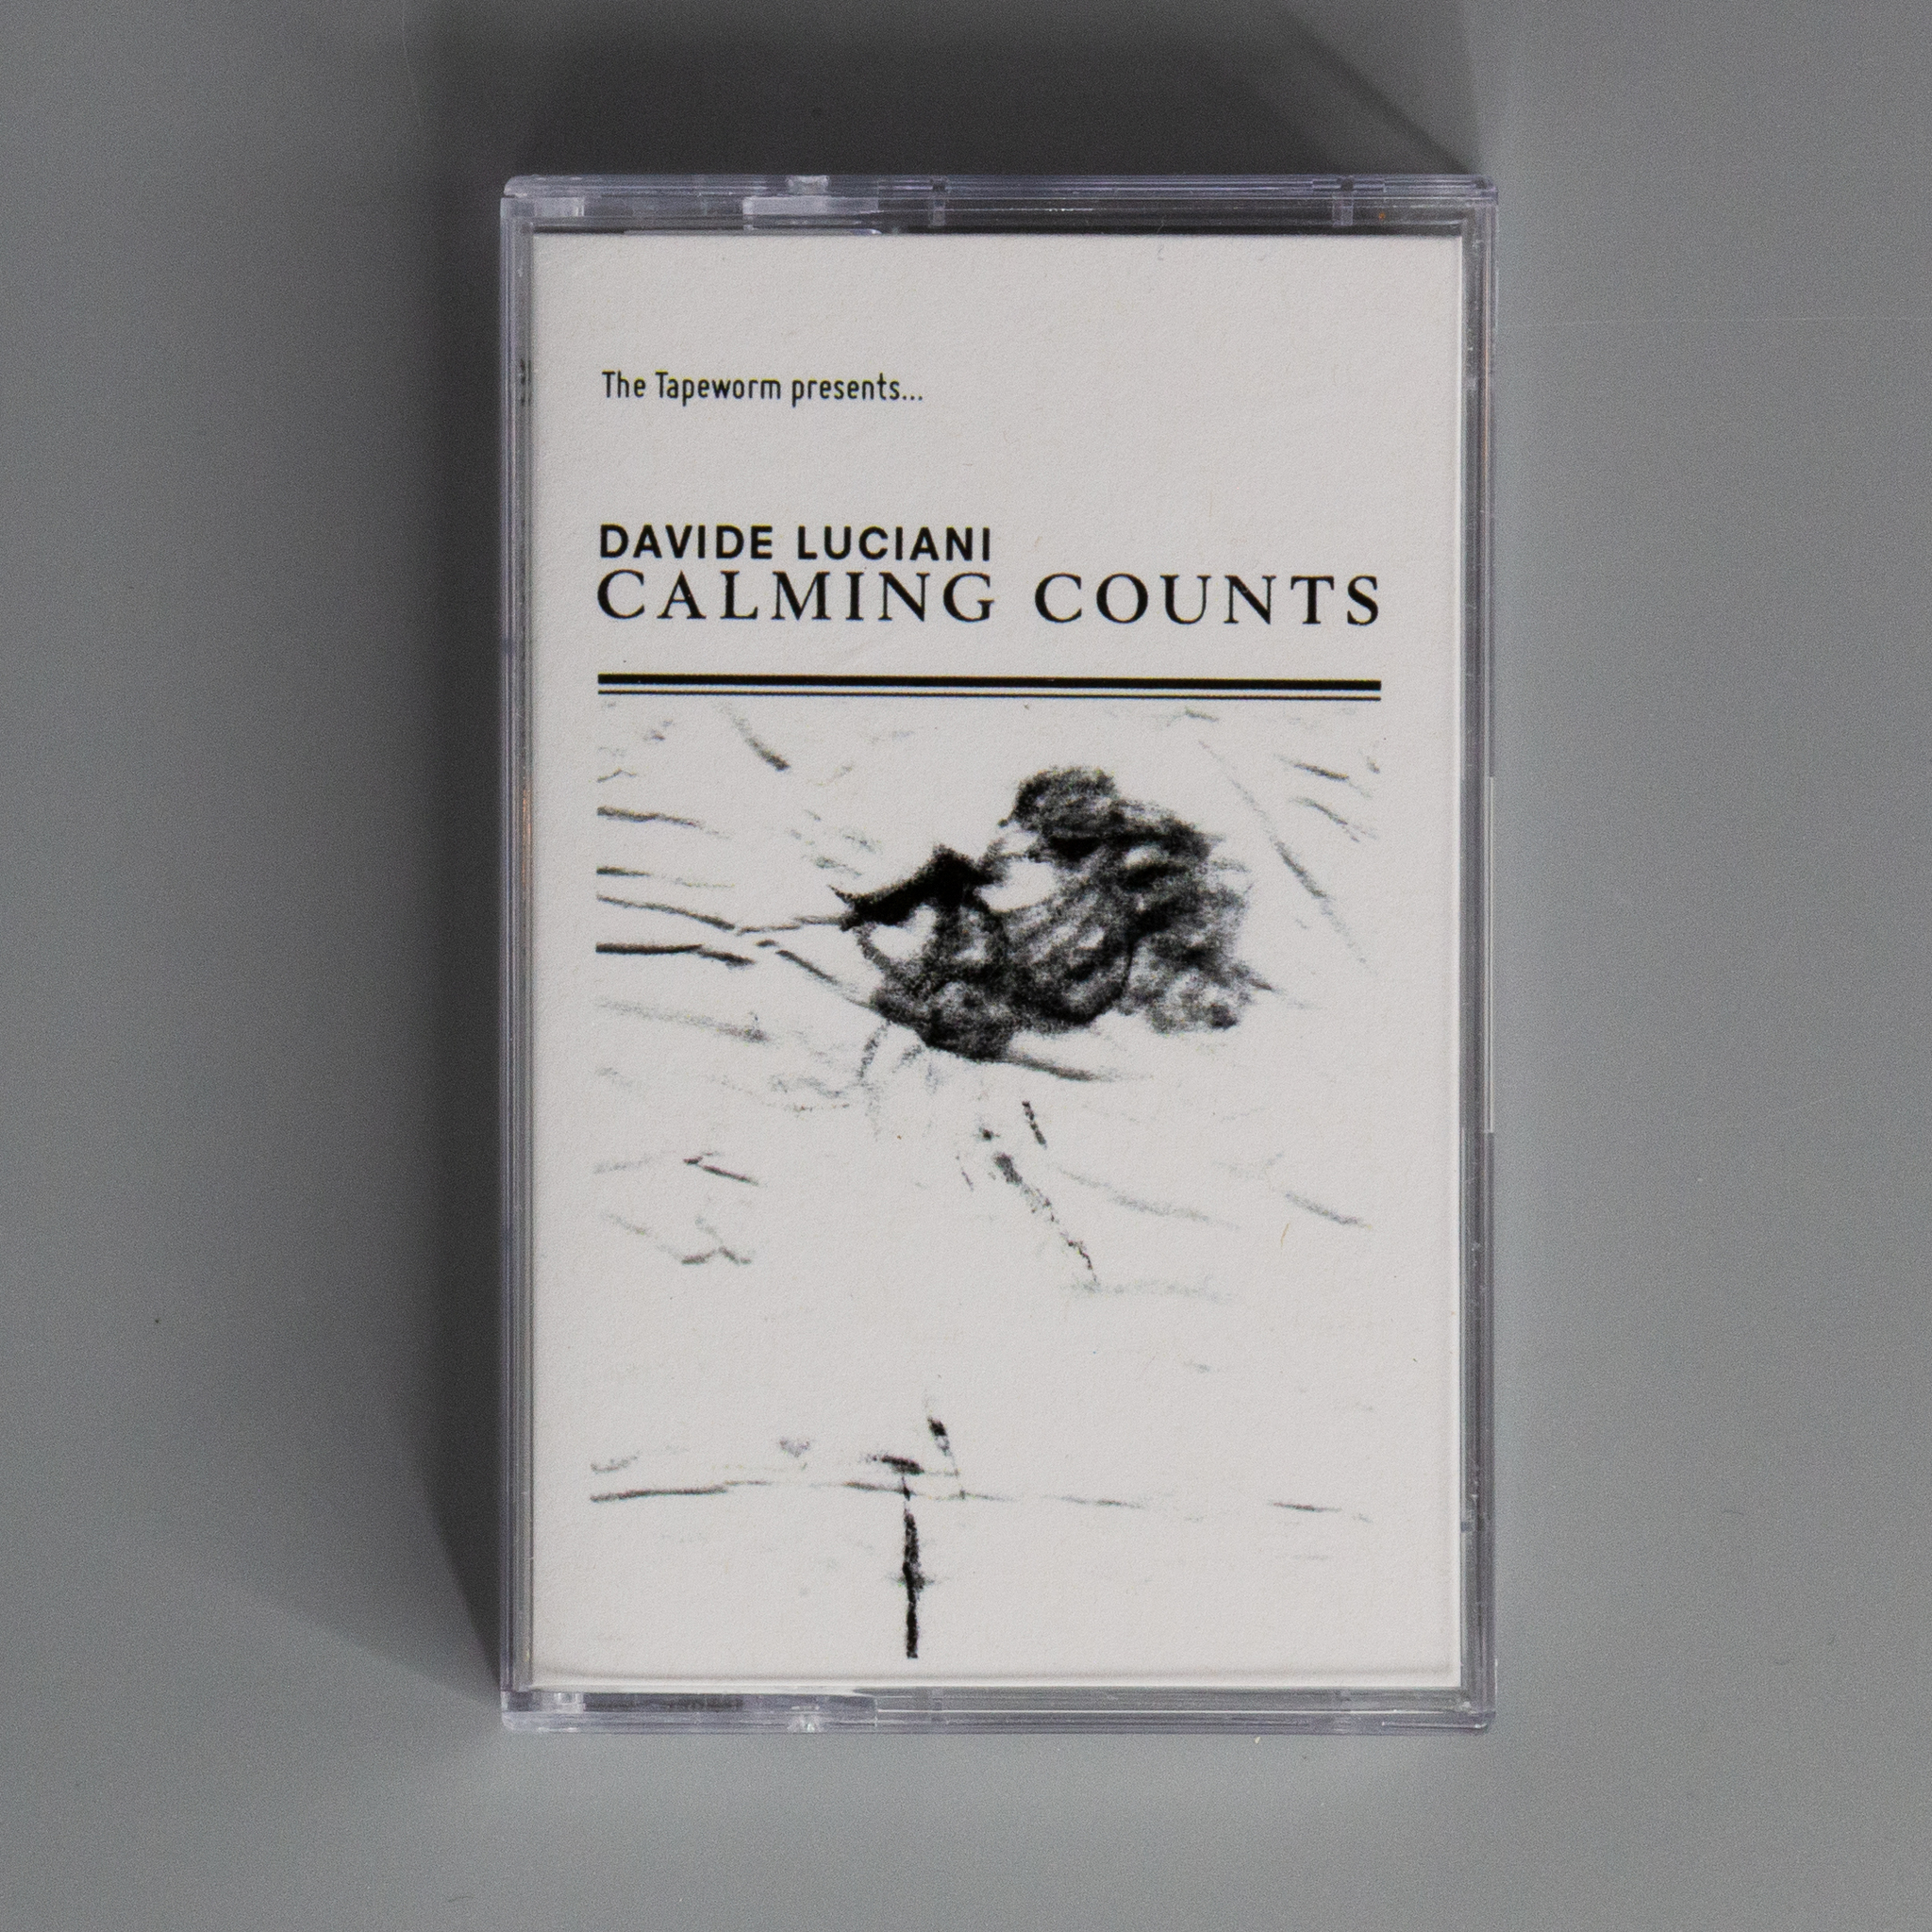 Calming Counts